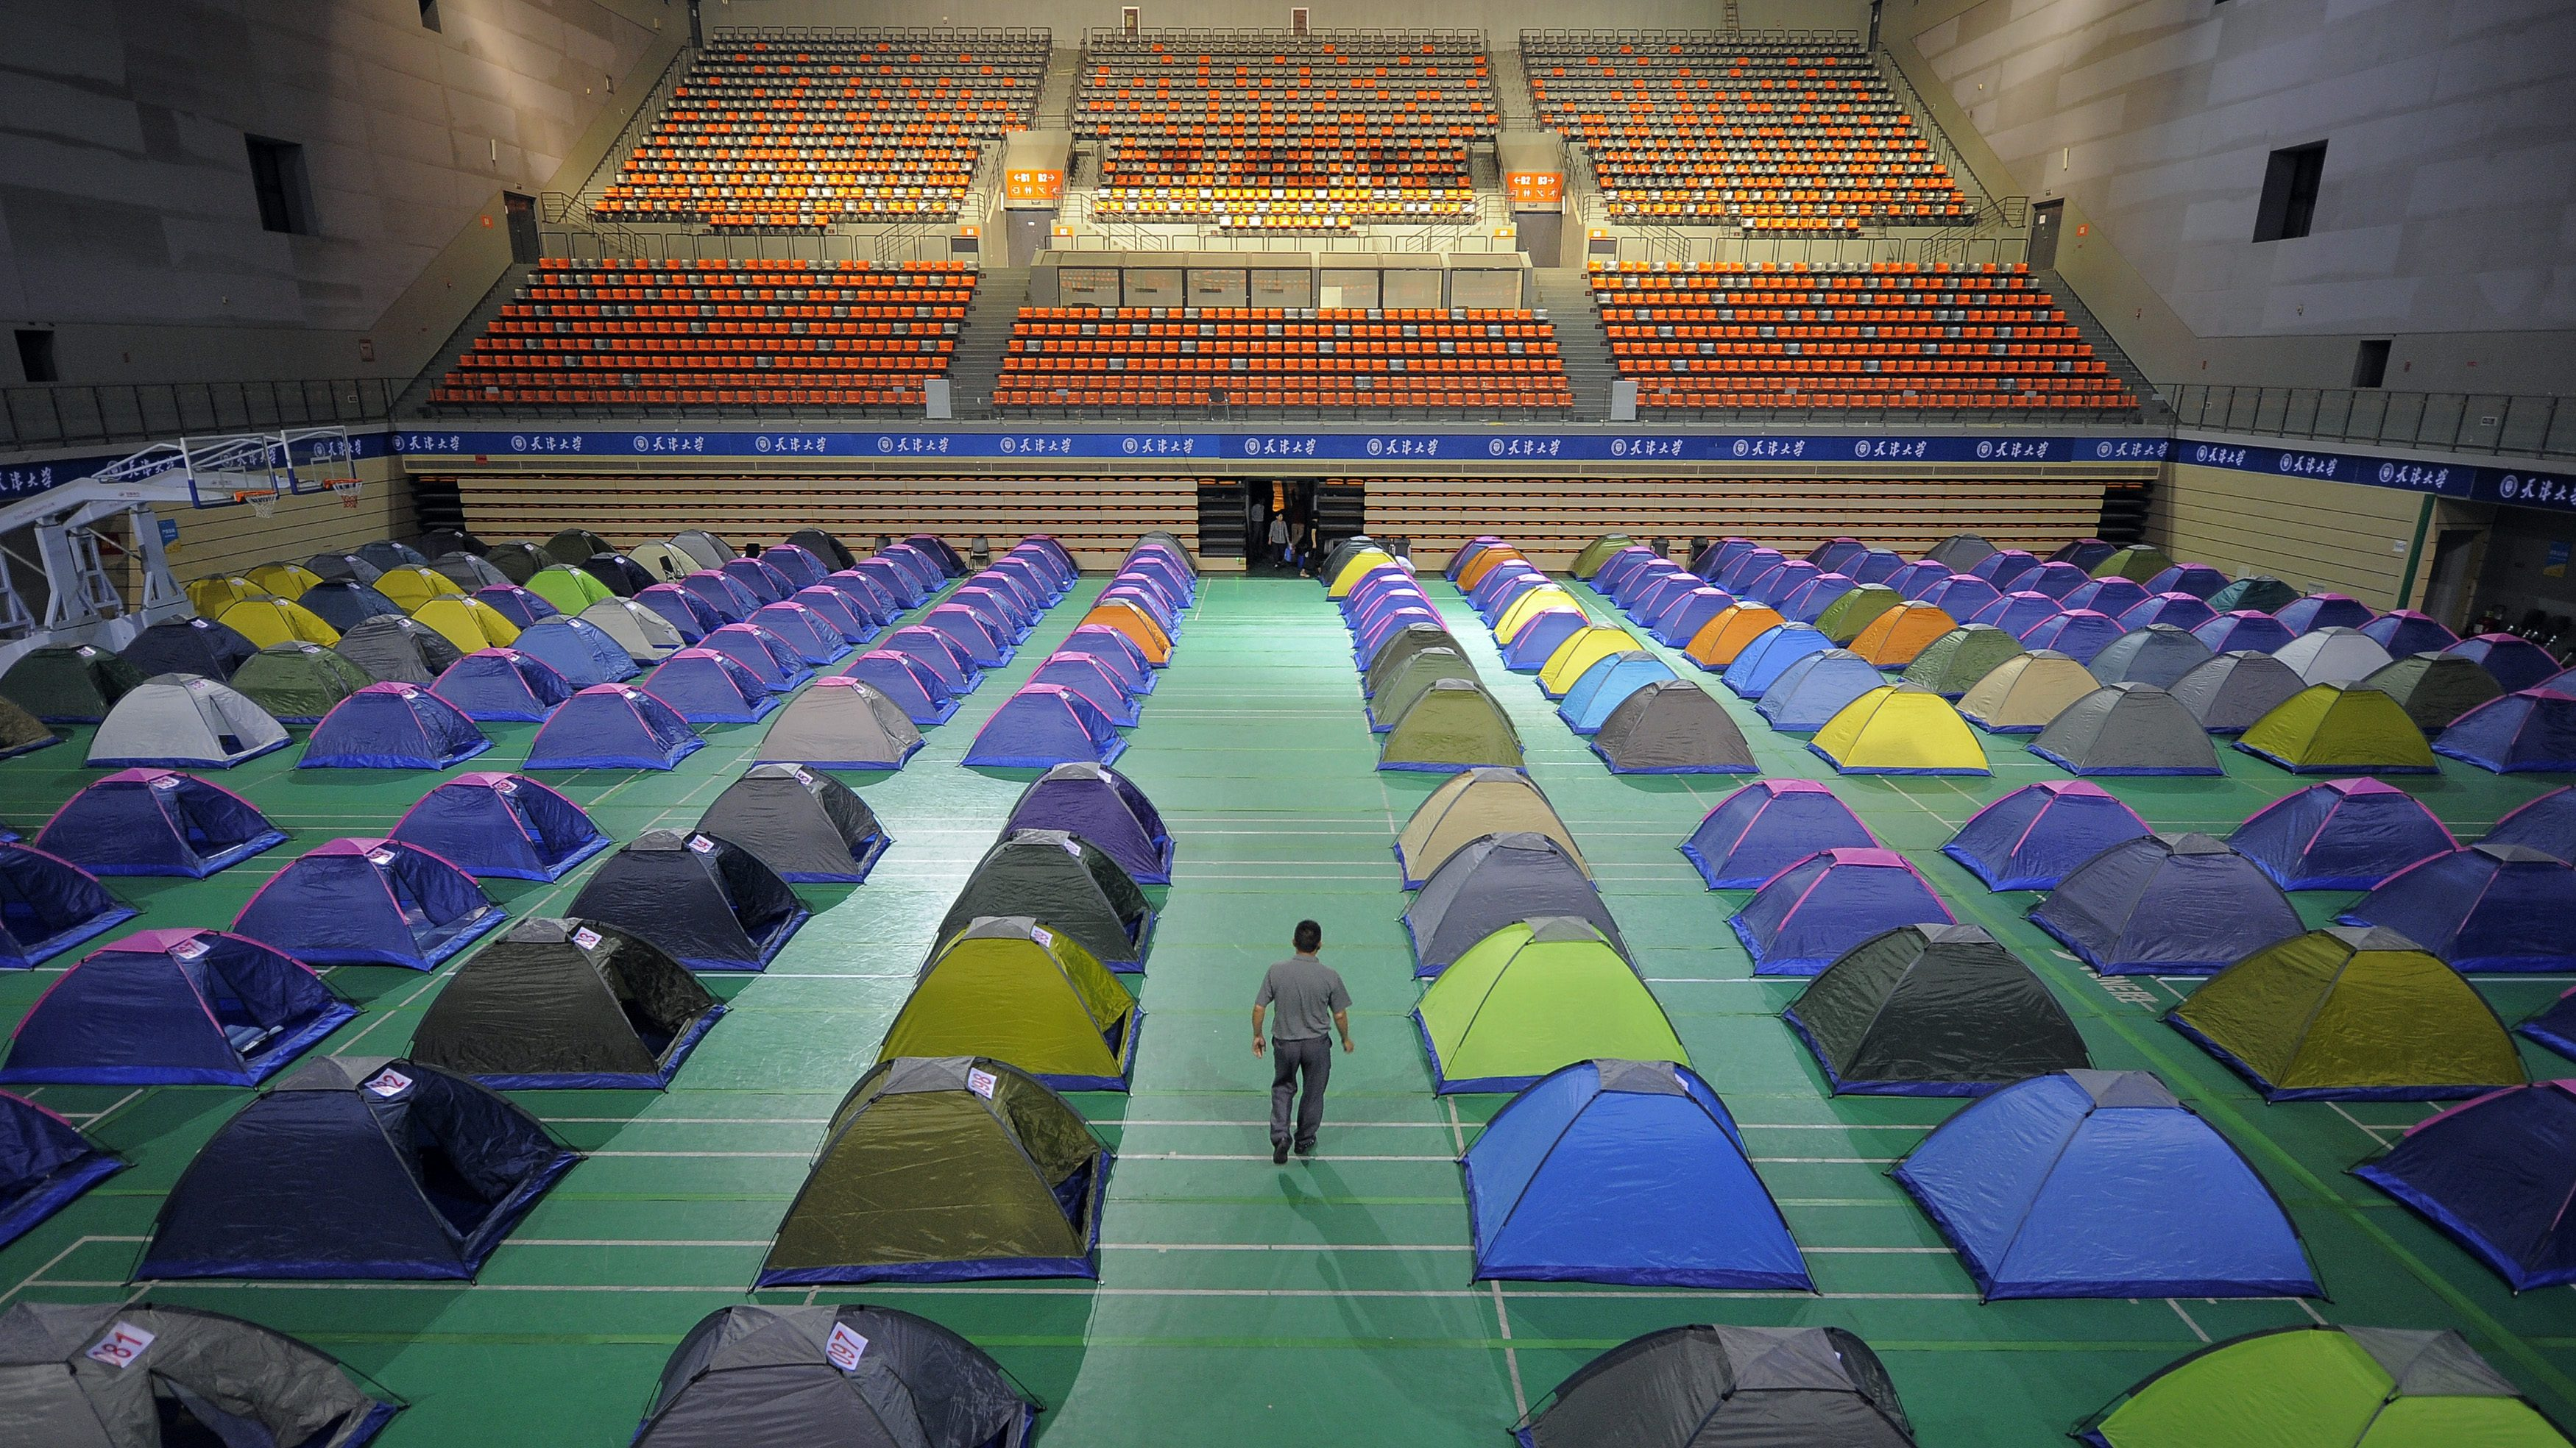 A man walks amidst tents set up on the floor of a gymnasium for parents of freshmen students at Tianjin University in Tianjin municipality, September 3, 2014. The university set up at least 270 tents in the gymnasium for the parents to stay overnight for free, local media reported. Picture taken September 3, 2014.